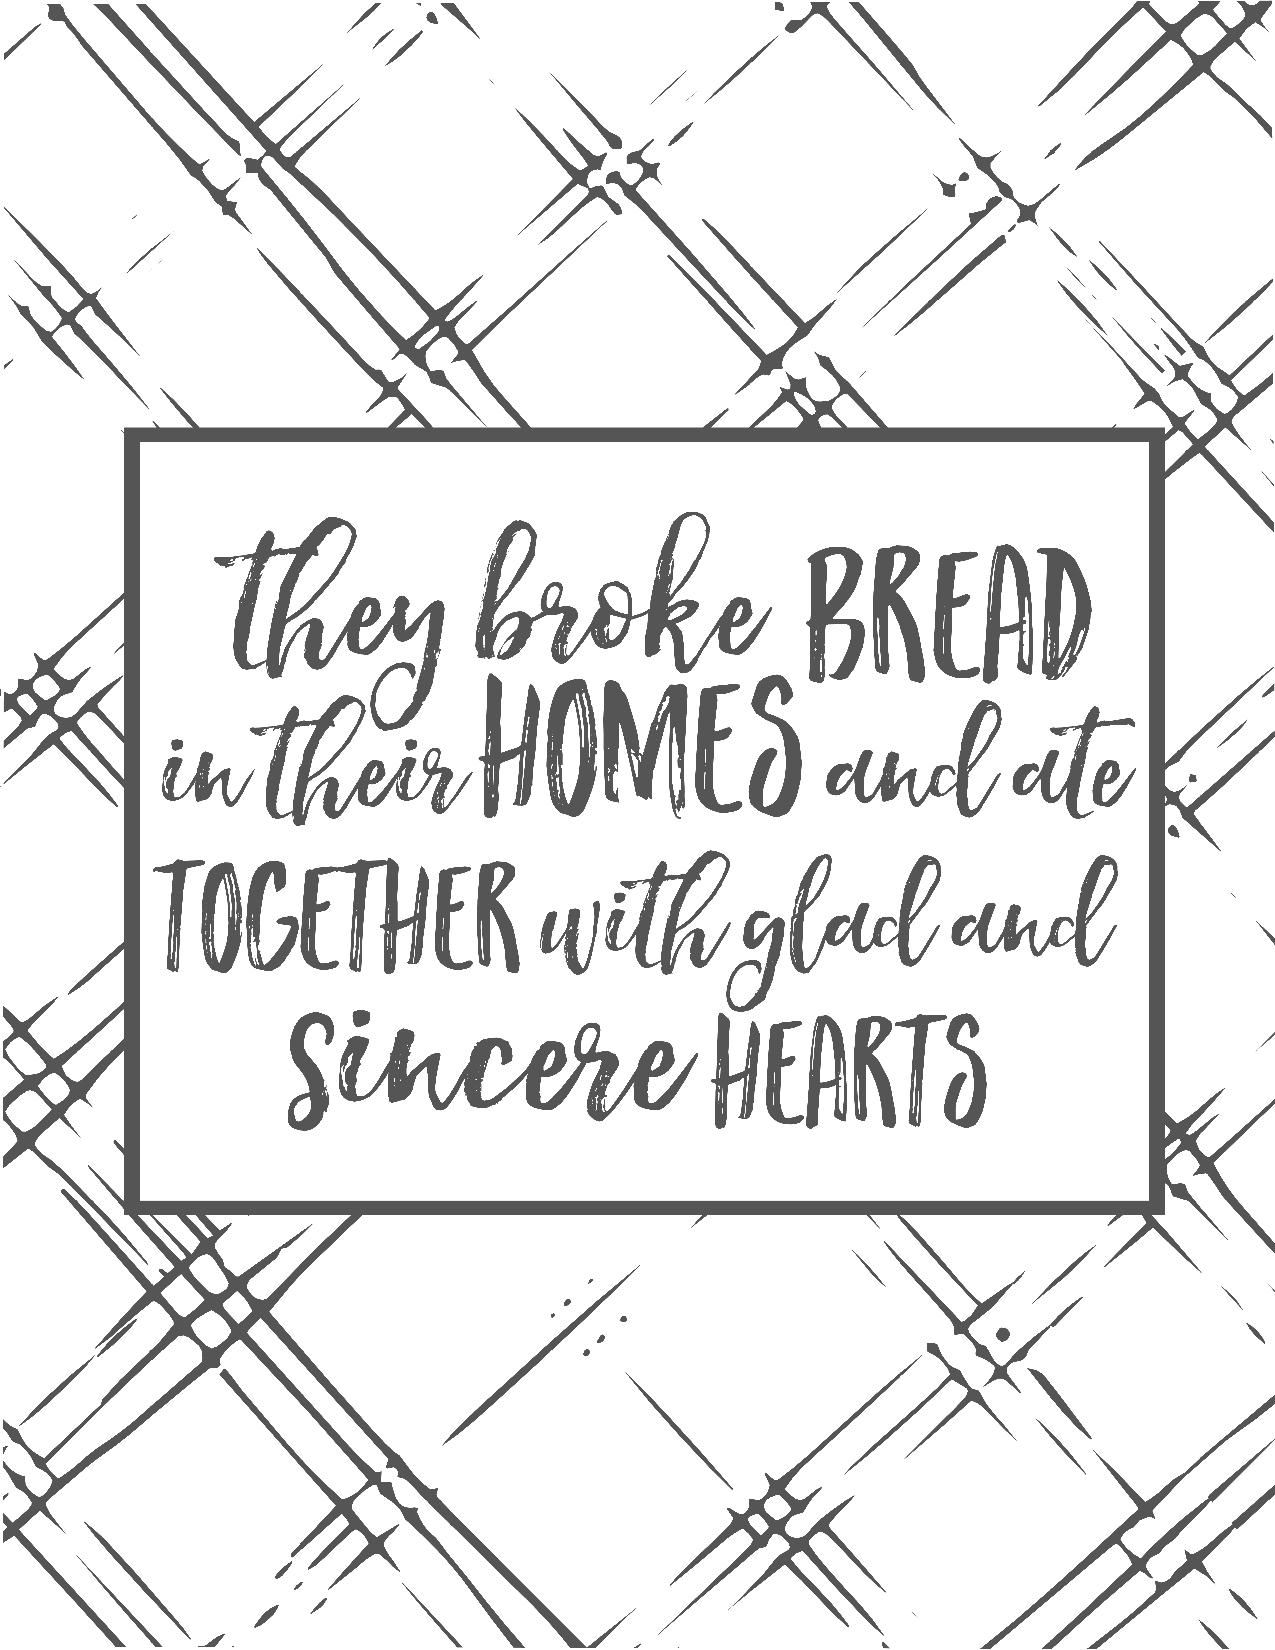 free plaid farmhouse printables with images farmhouse printables mother teresa quotes on farmhouse kitchen quotes free printable id=43274